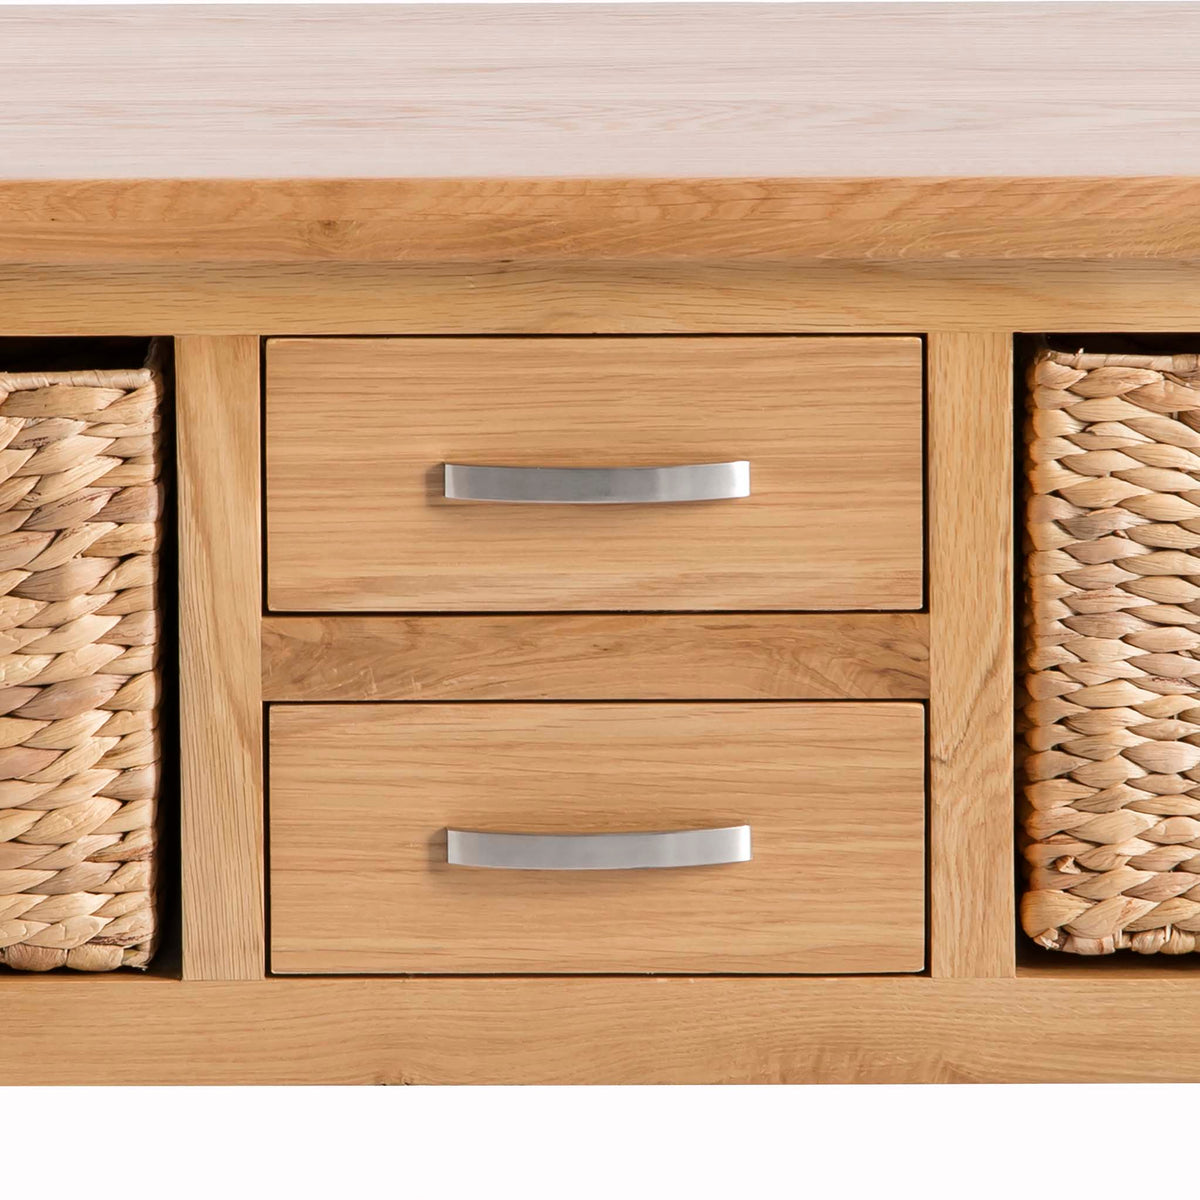 London Oak Coffee Table with Baskets by Roseland Furniture - Close up of drawers